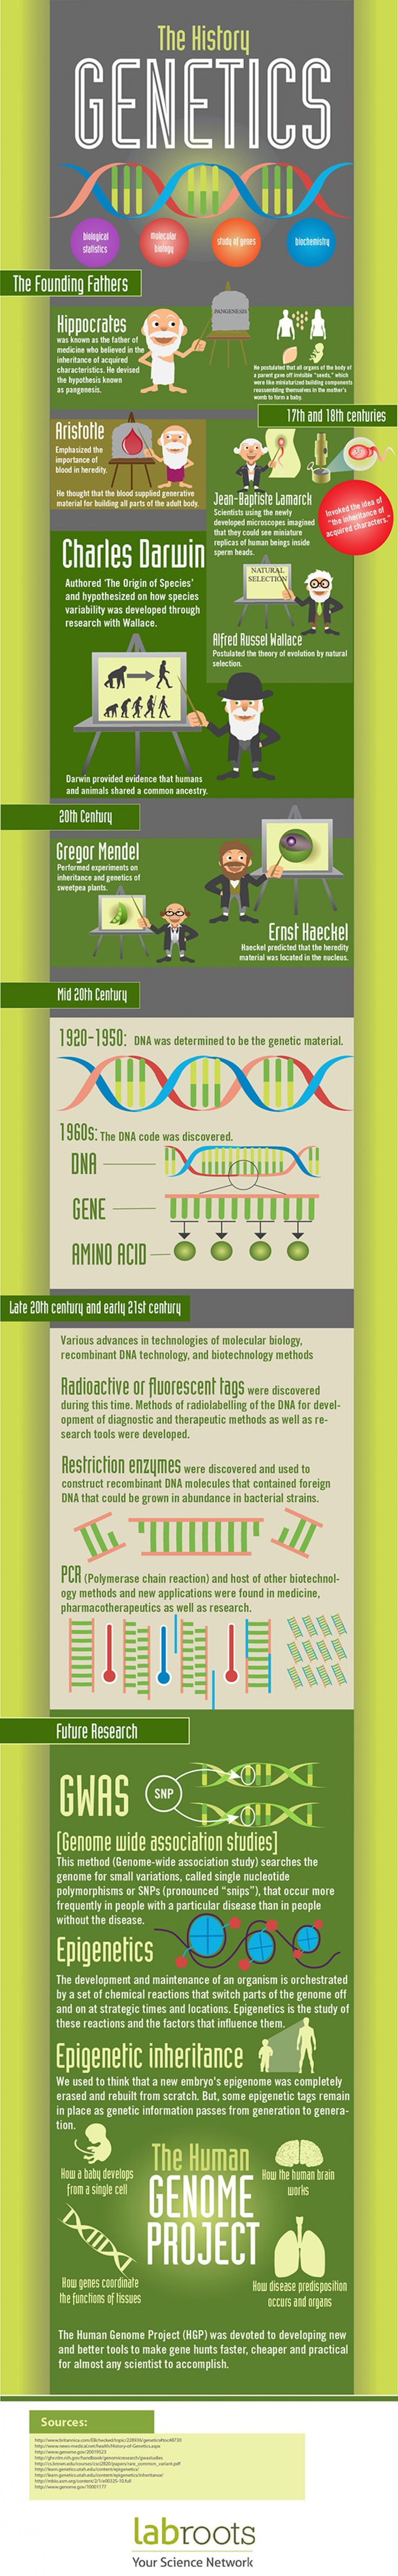 The History of Genetics Infographic #science, #genetics